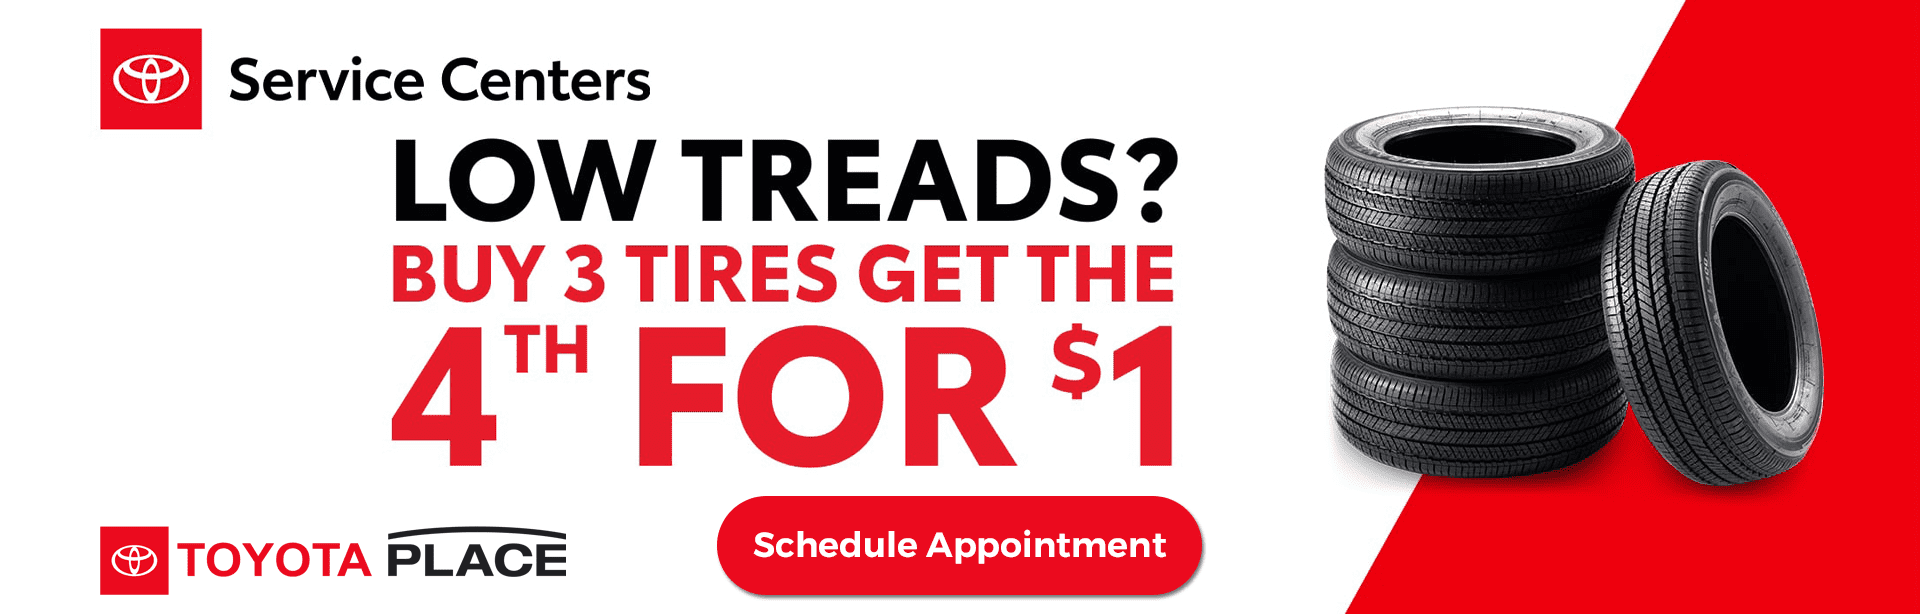 Toyota_Buy_3_Tires_Get_4th_for_1_Dollar_Sales_Toyota_Place